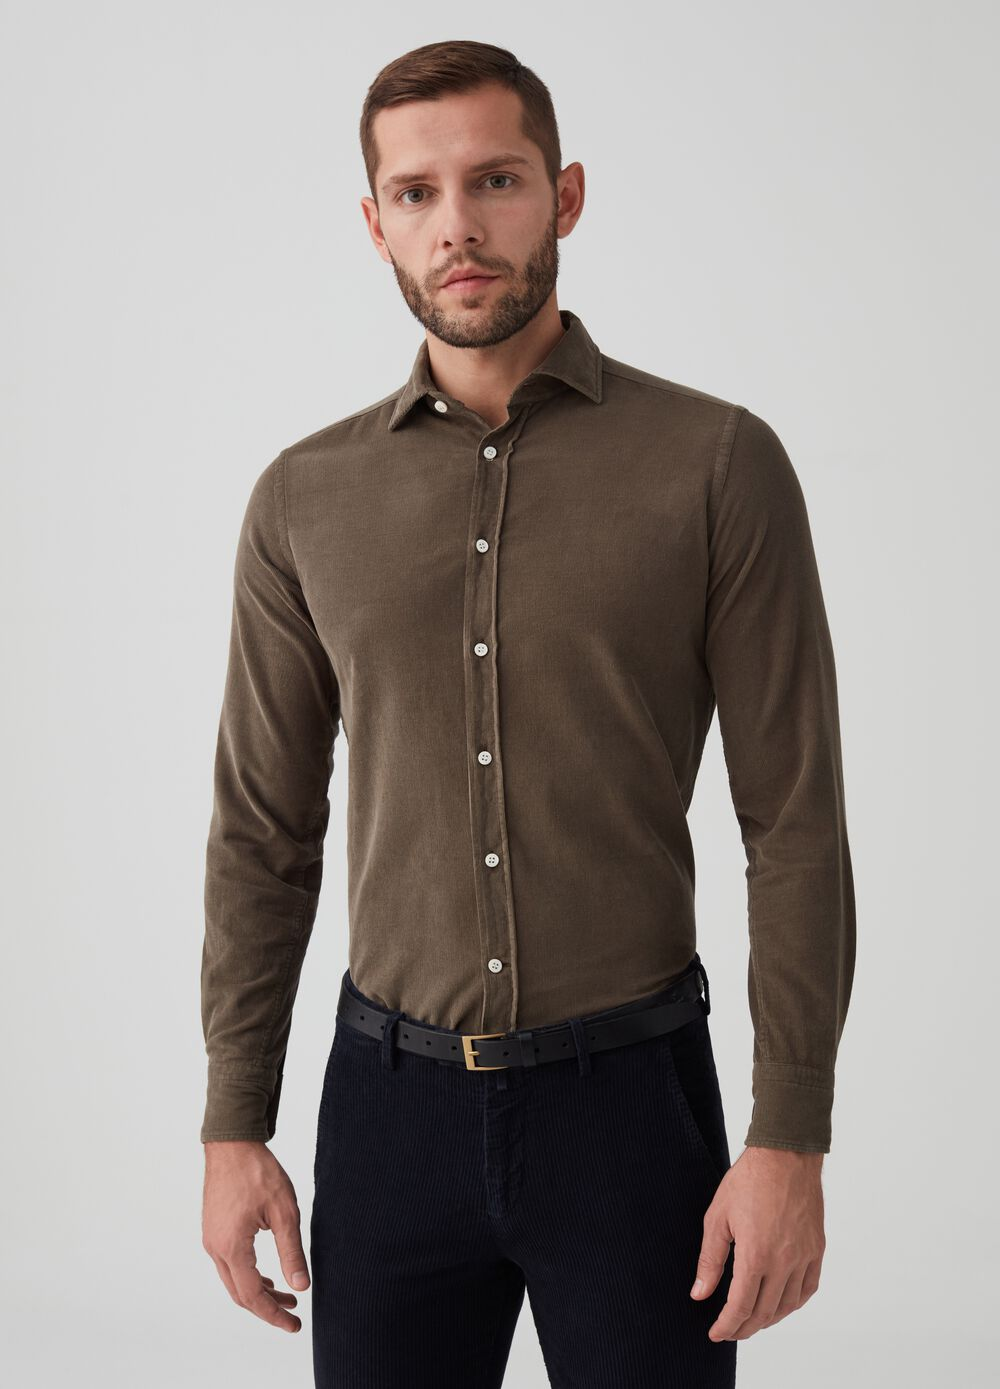 Rumford 100% cotton shirt with placket